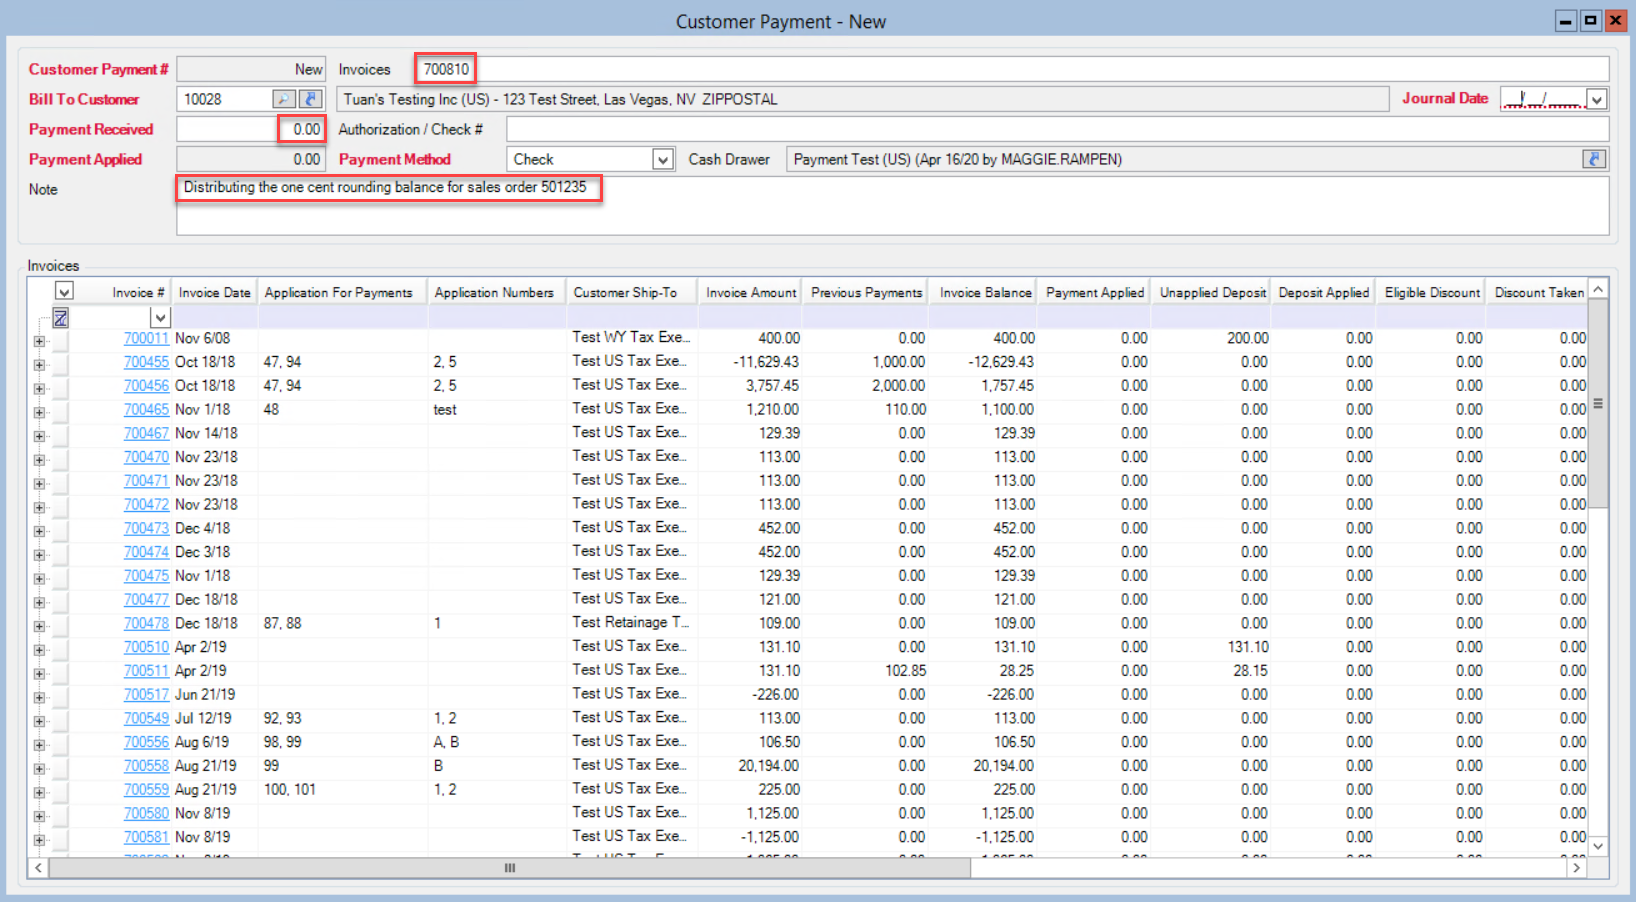 Customer Payments window; shows location of the Invoices field, Payment Received field, and Note field.